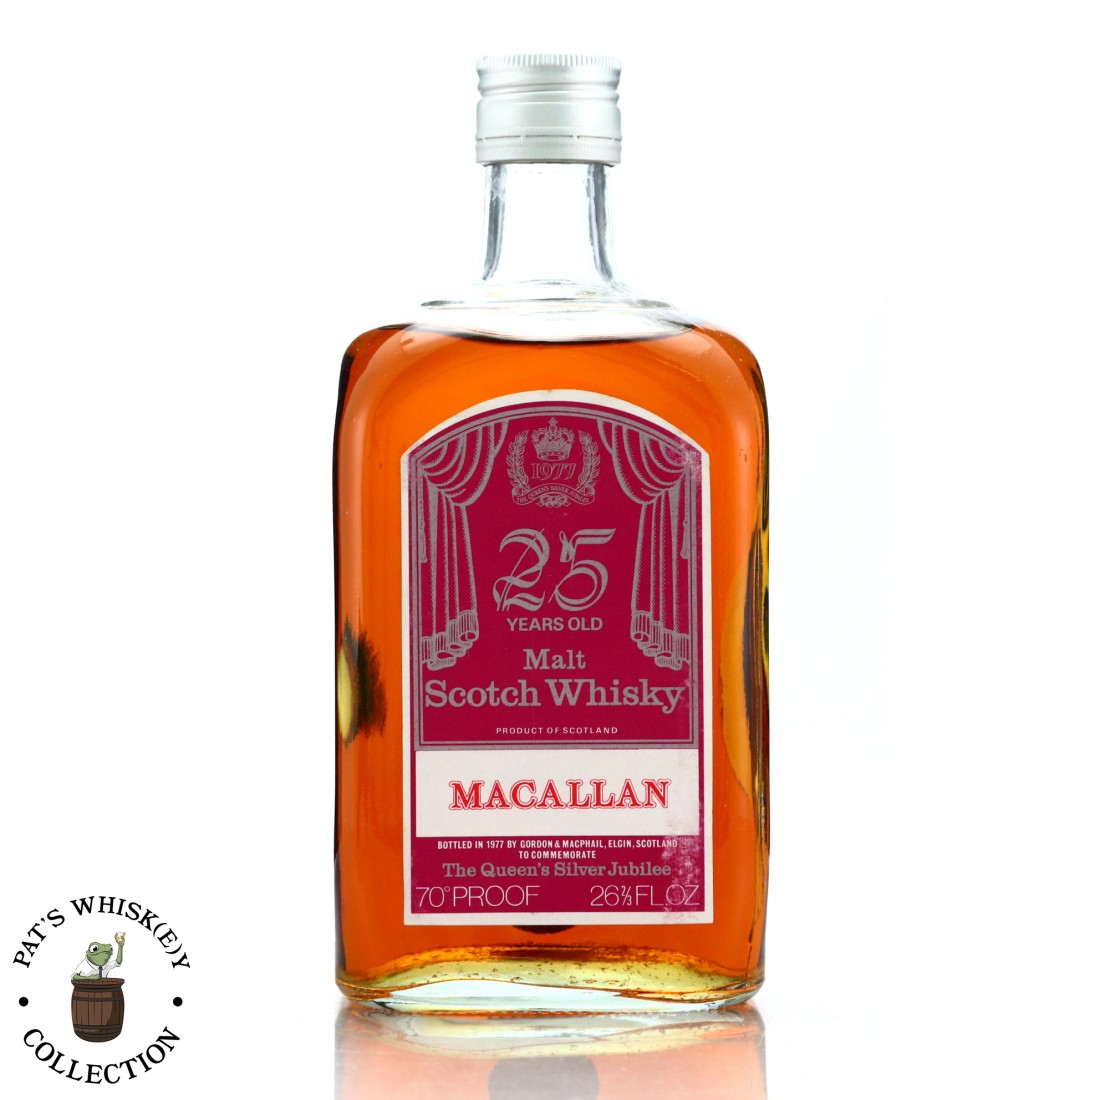 Macallan 25 Year Old Gordon and MacPhail Queen's Silver Jubilee 1977